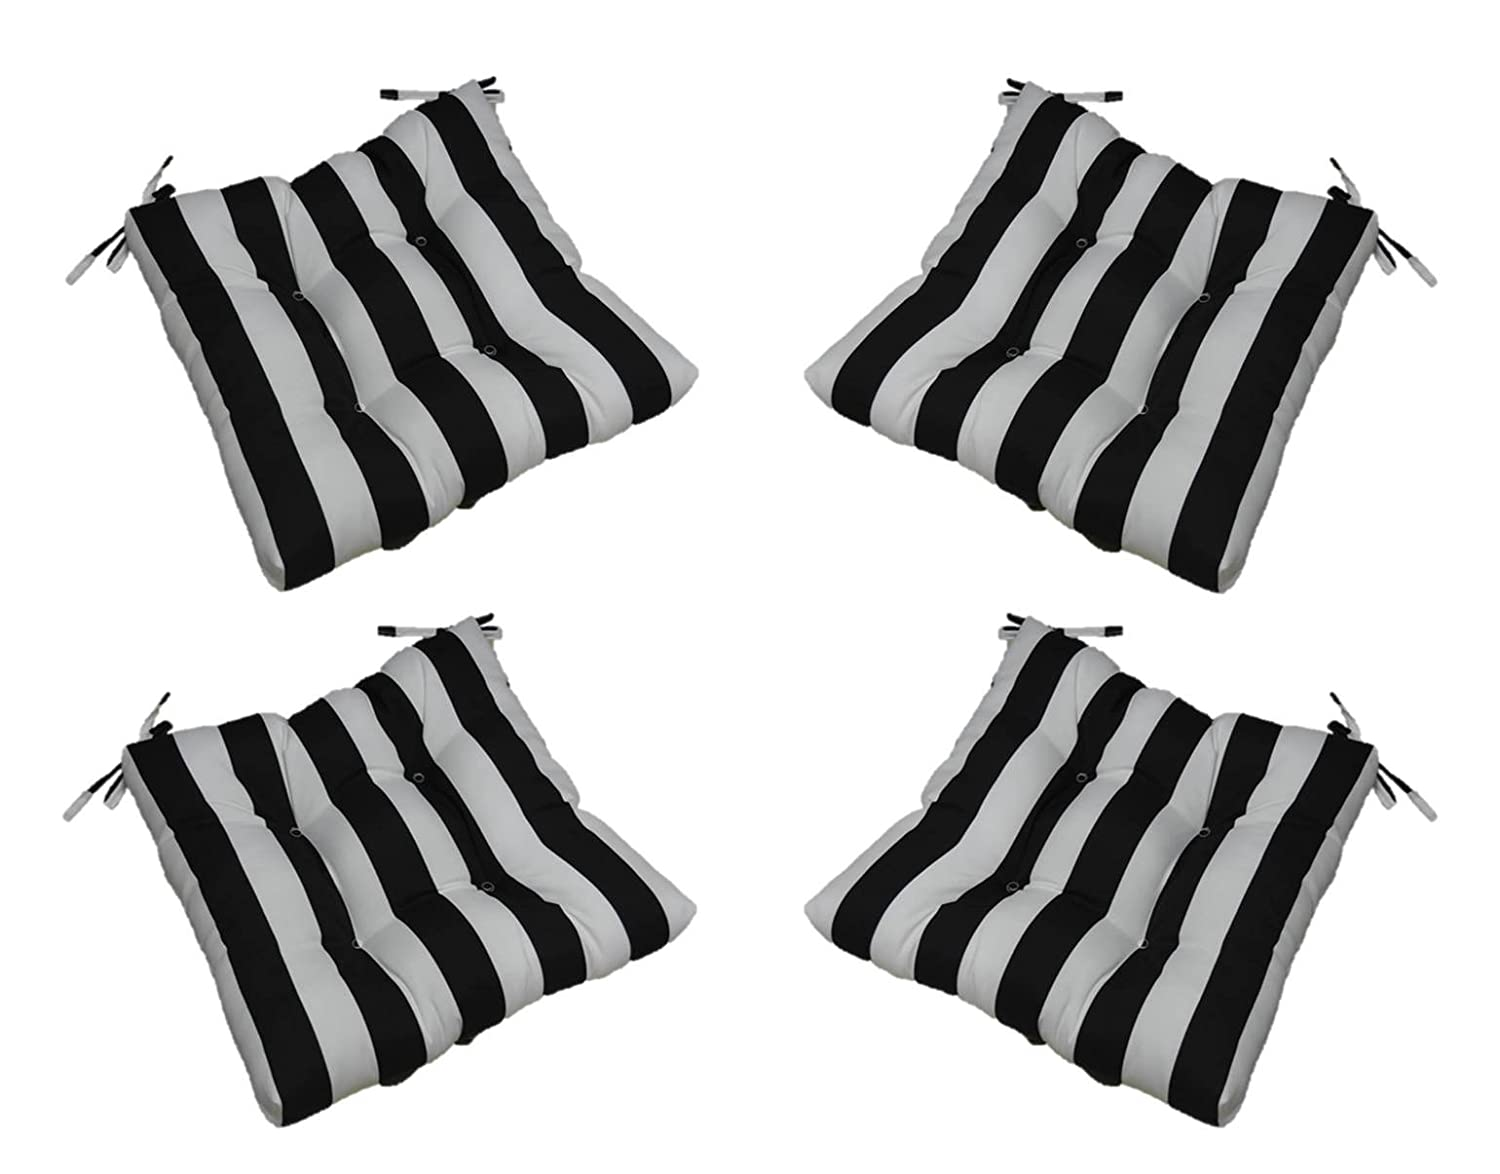 """Resort Spa Home Decor Set of 4 - Indoor/Outdoor Black and White Stripe Universal Tufted Seat Cushions with Ties for Dining Patio Chairs - Choose Size (16"""" x 16"""")"""